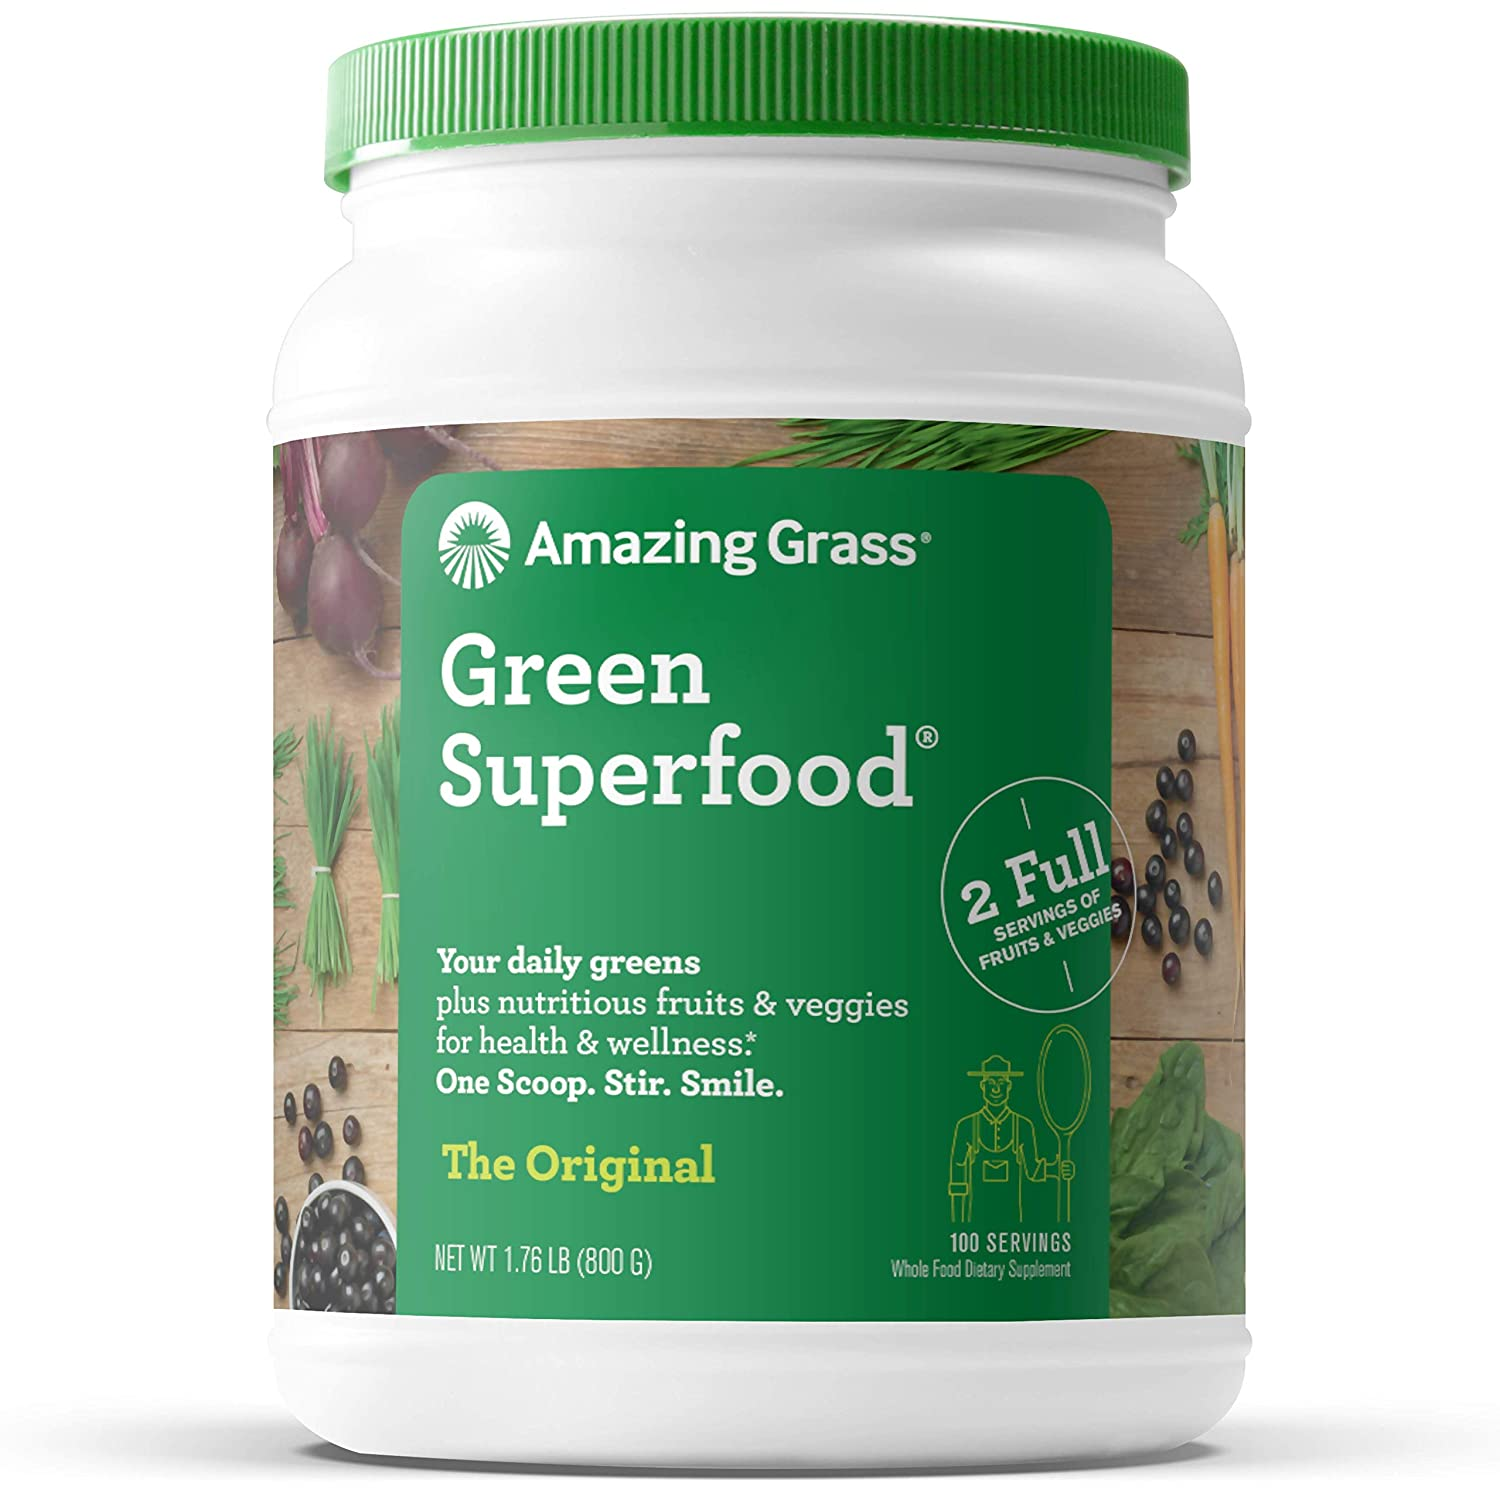 Amazing Grass Green Superfood: Super Greens Powder with Spirulina, Alfalfa, Digestive Enzymes & Probiotics, Original, 100 Servings